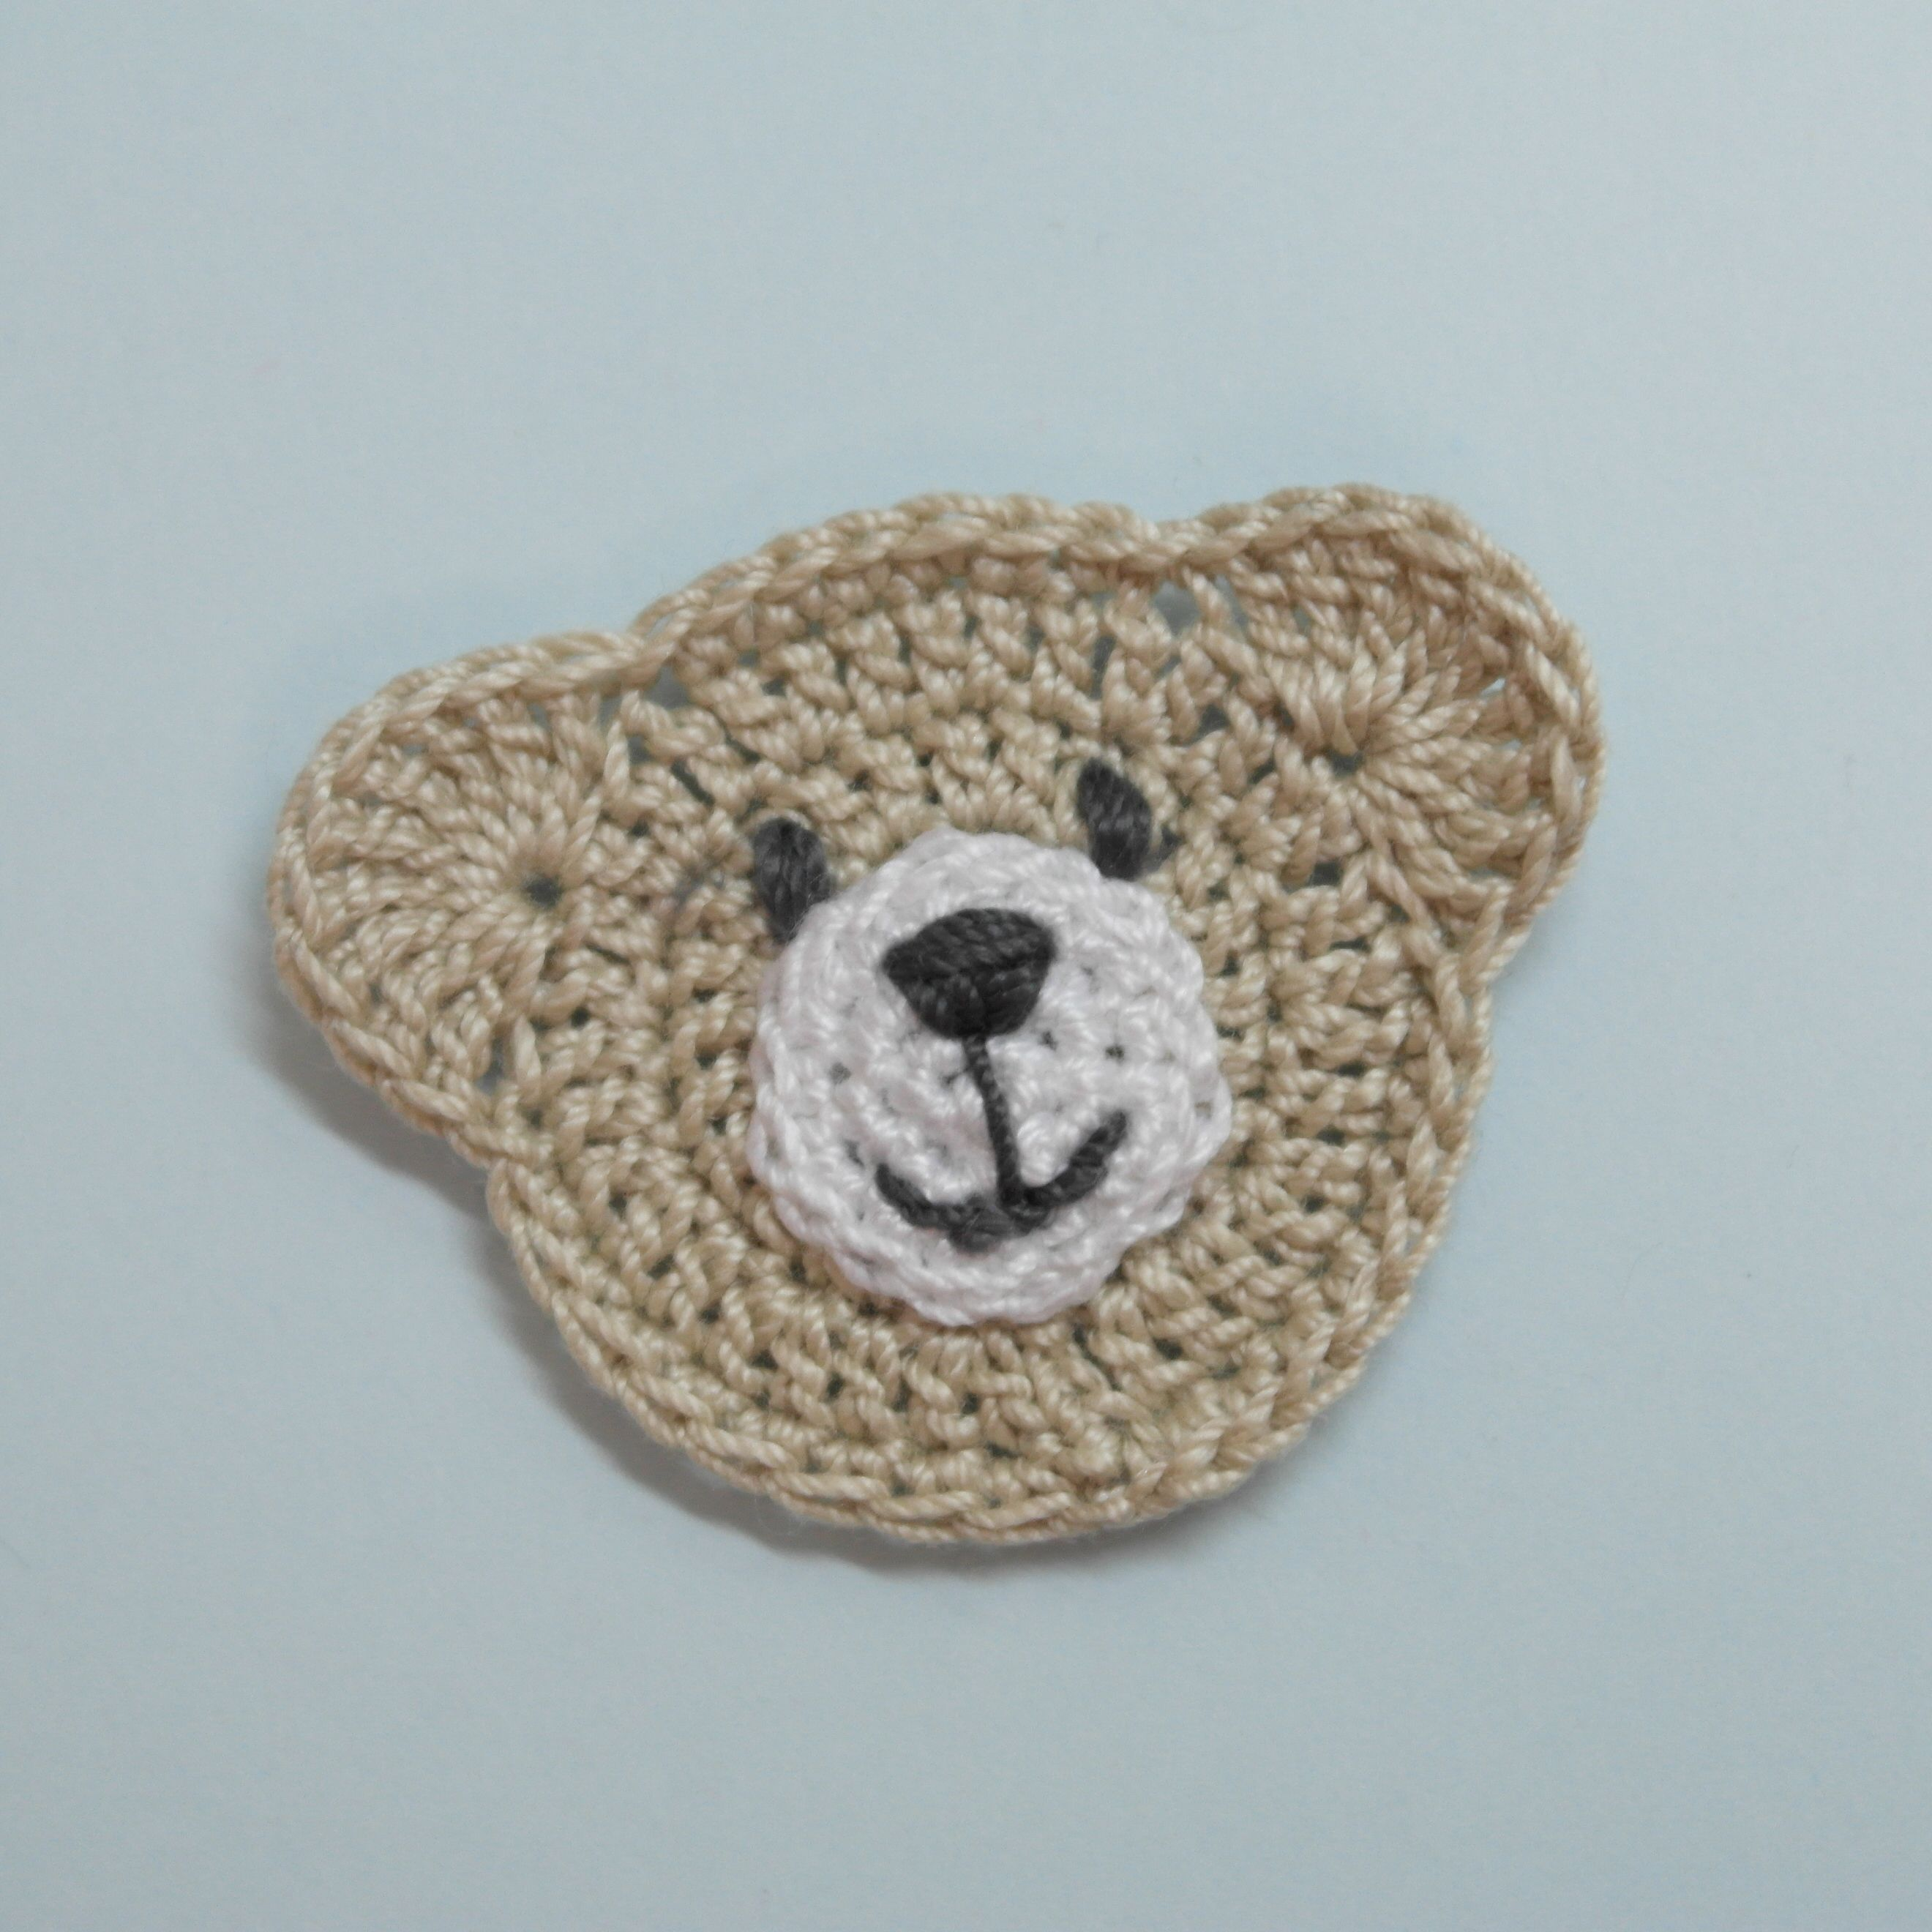 Make a Cute Crocheted Teddy Bear Application | Crochet | Pinterest ...